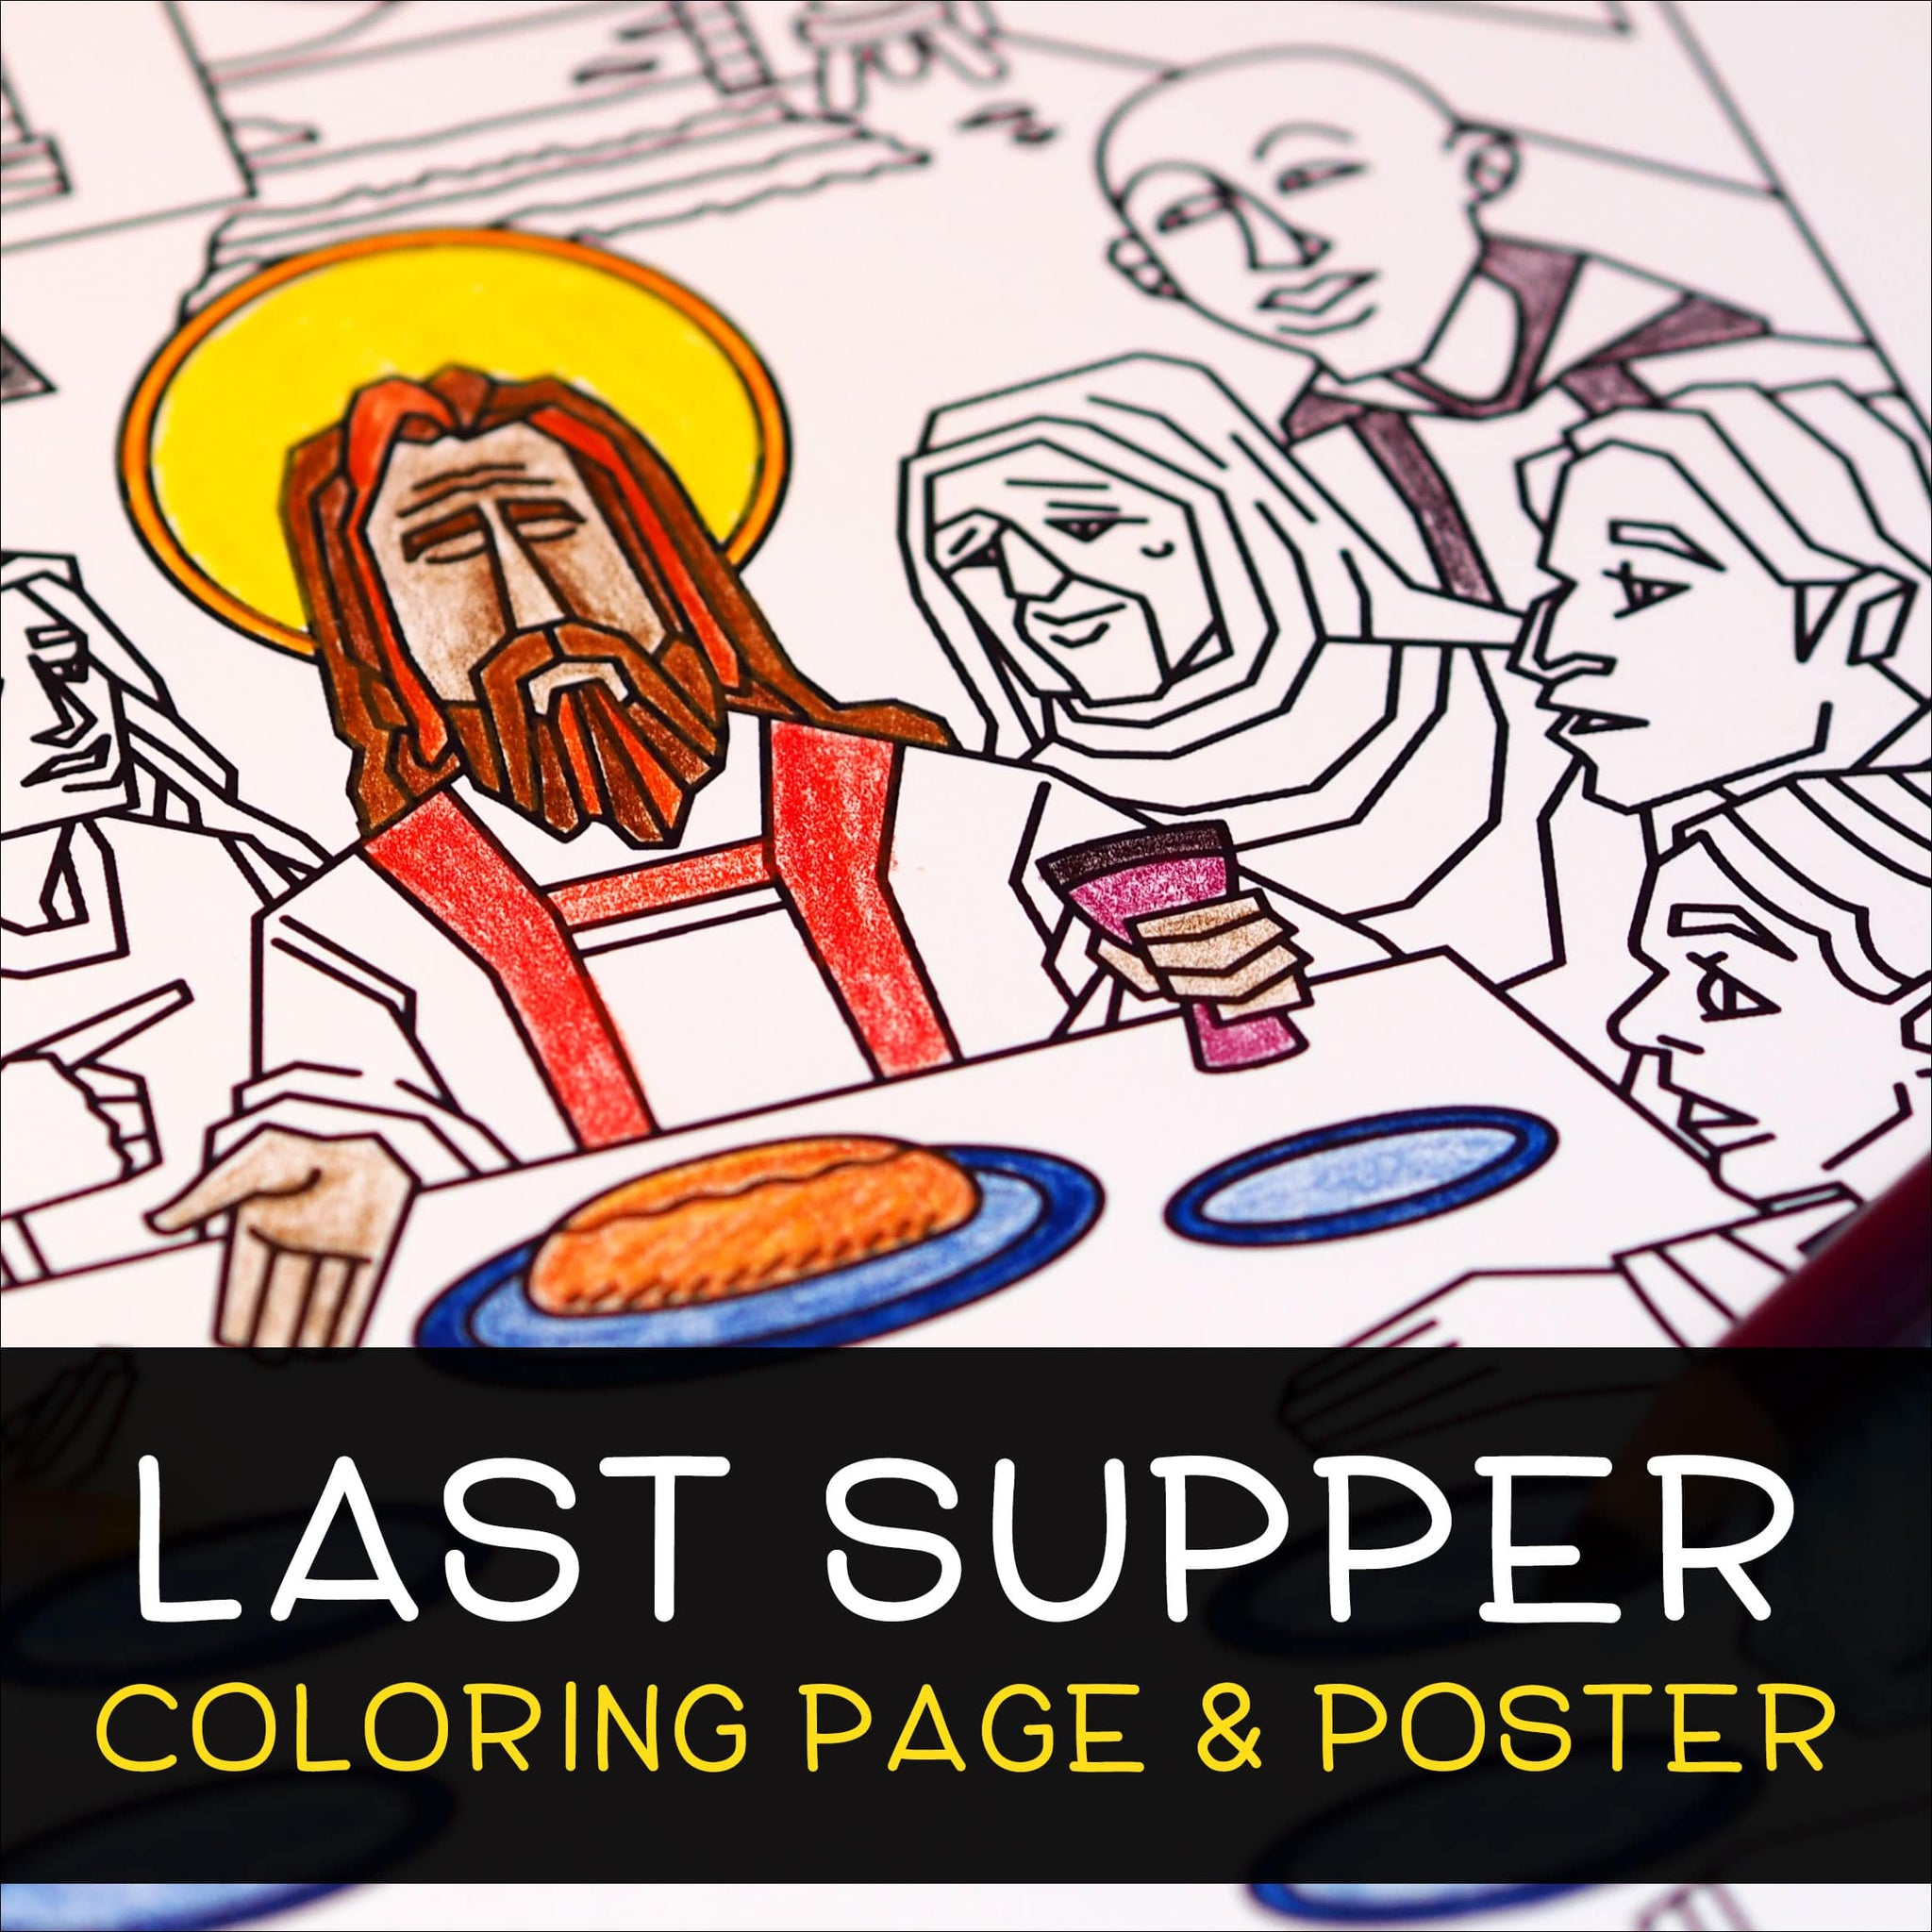 Last Supper Coloring Page & Poster